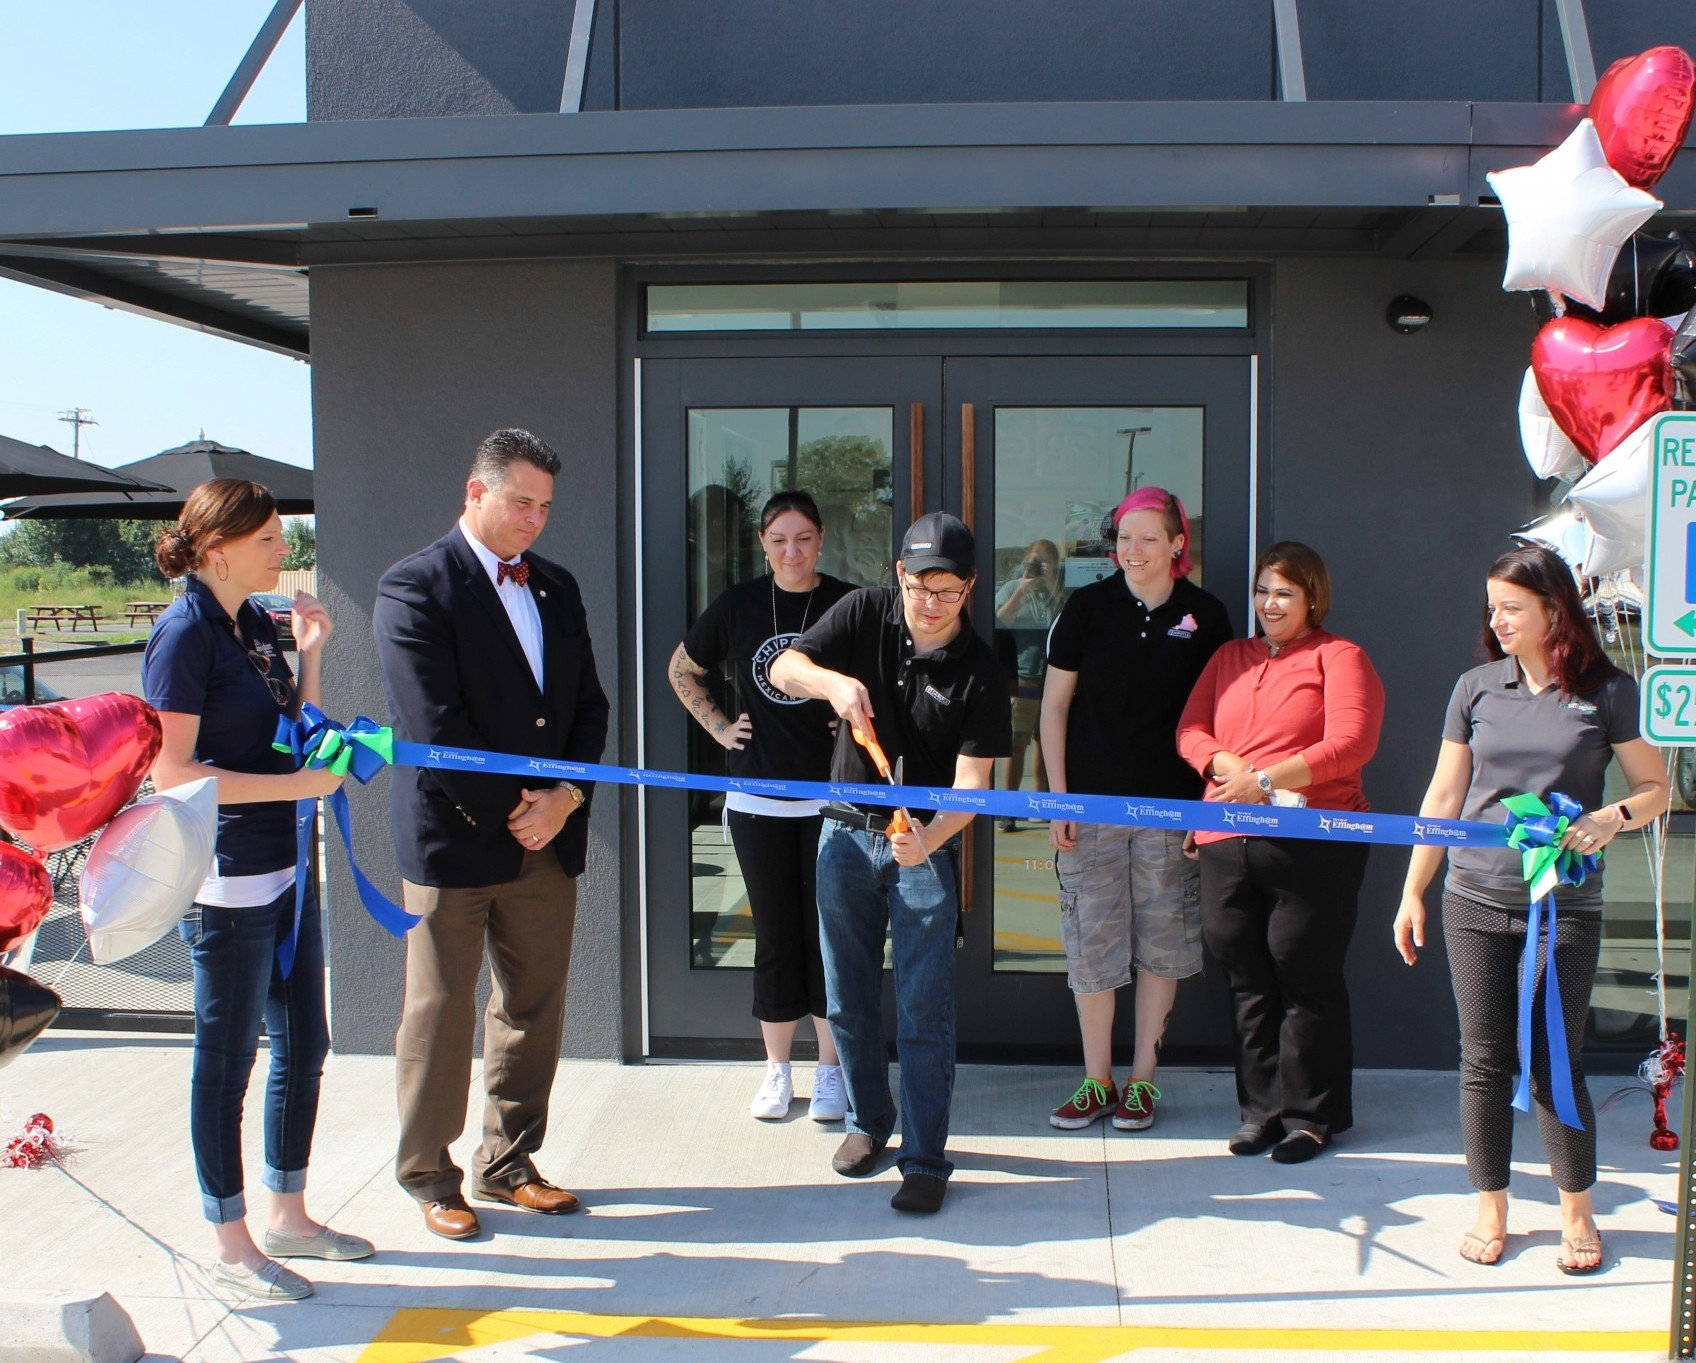 Chipotle Holds Grand Opening in Effingham